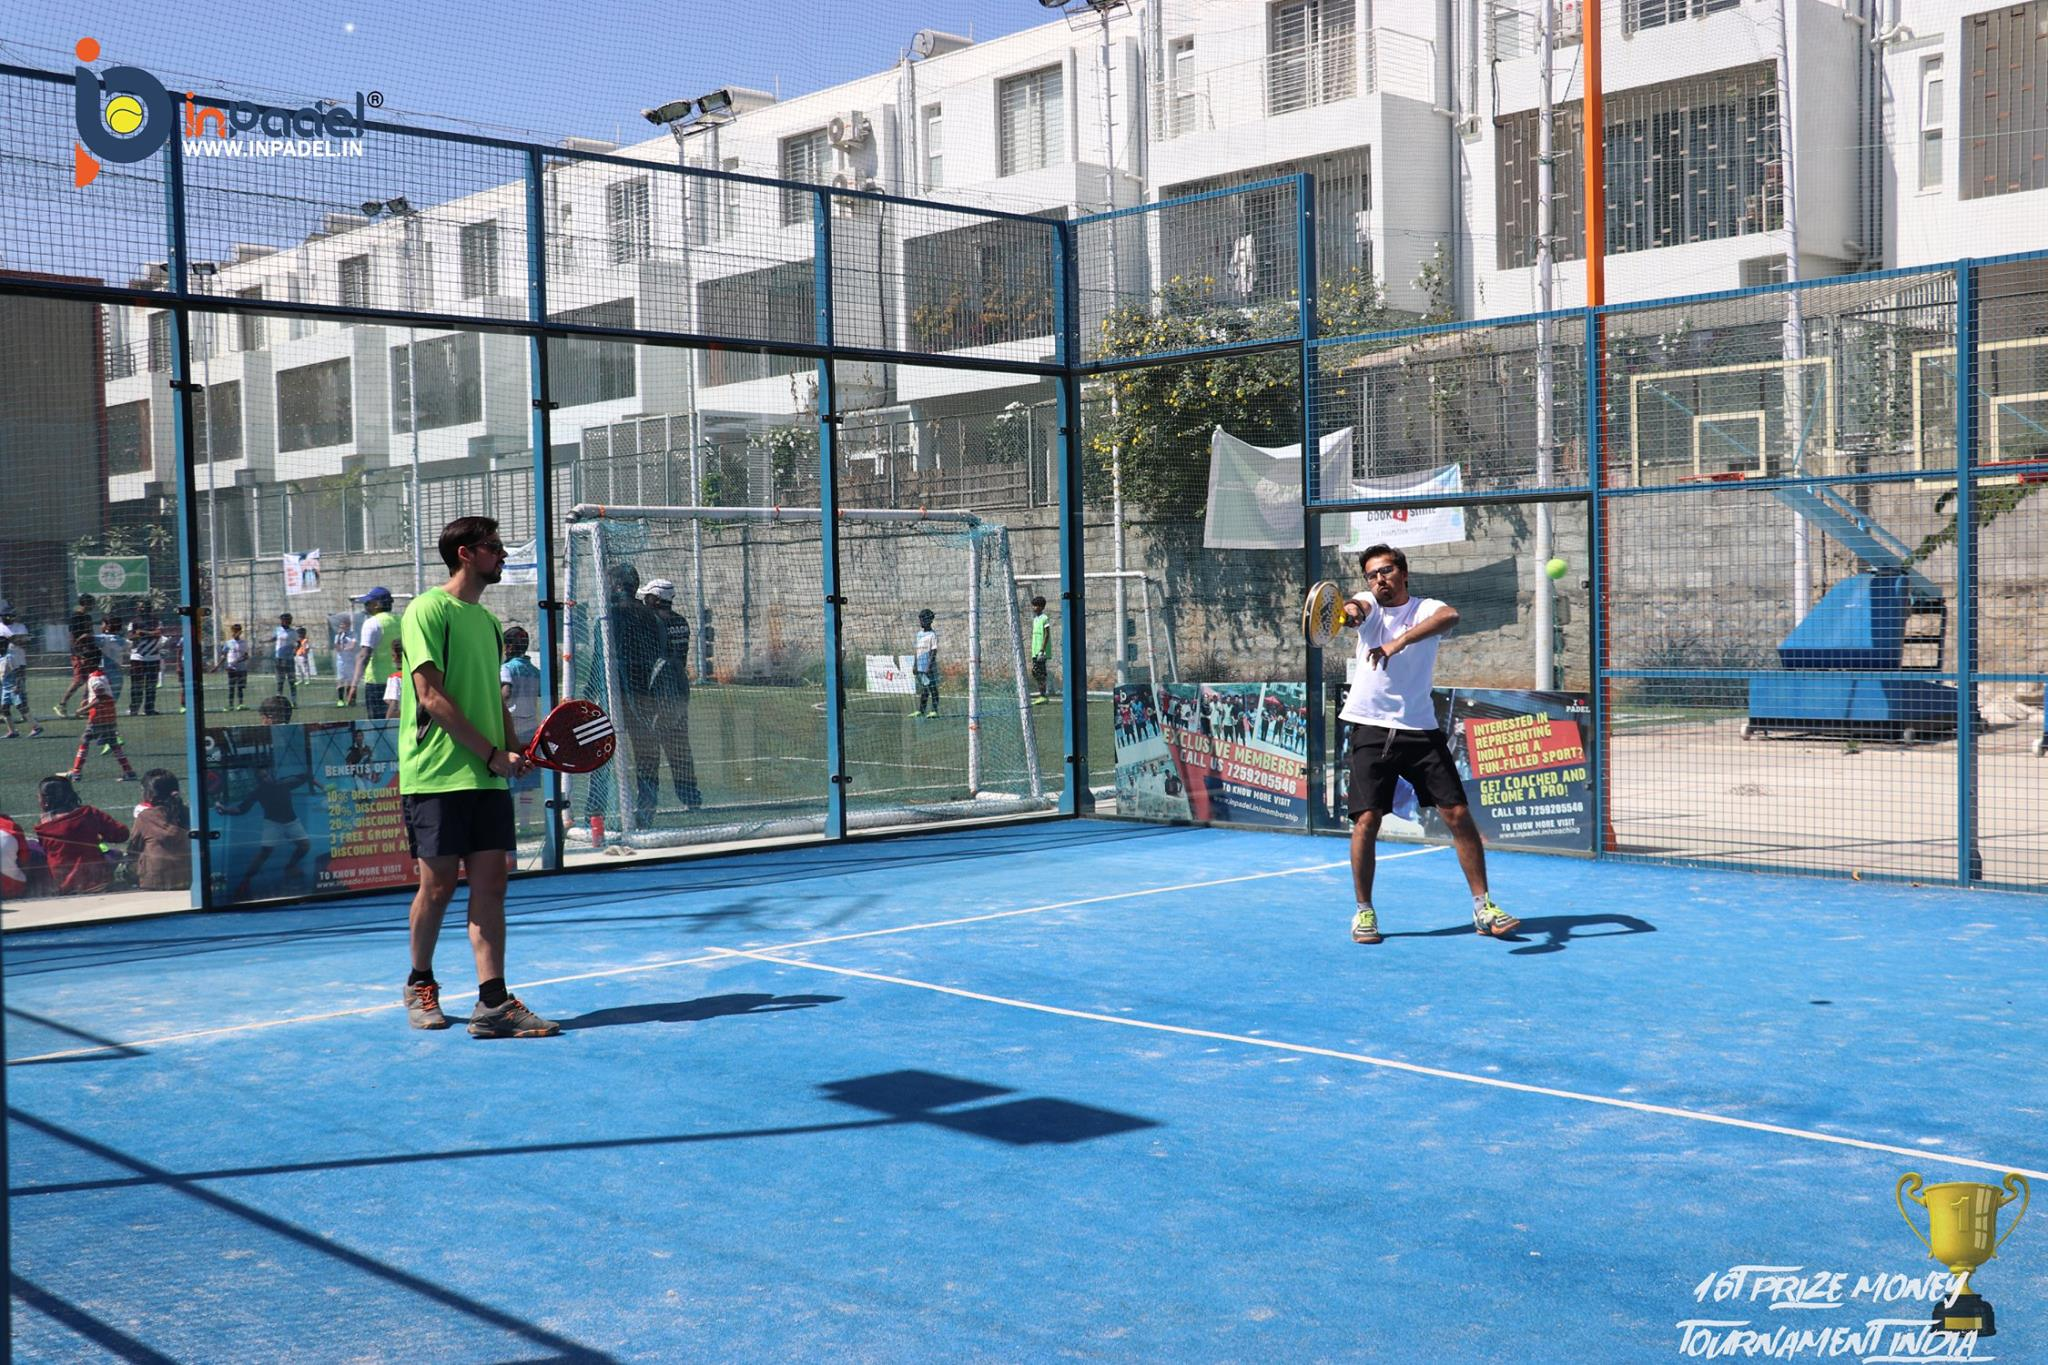 InPadel Prize Money Tournament (6)